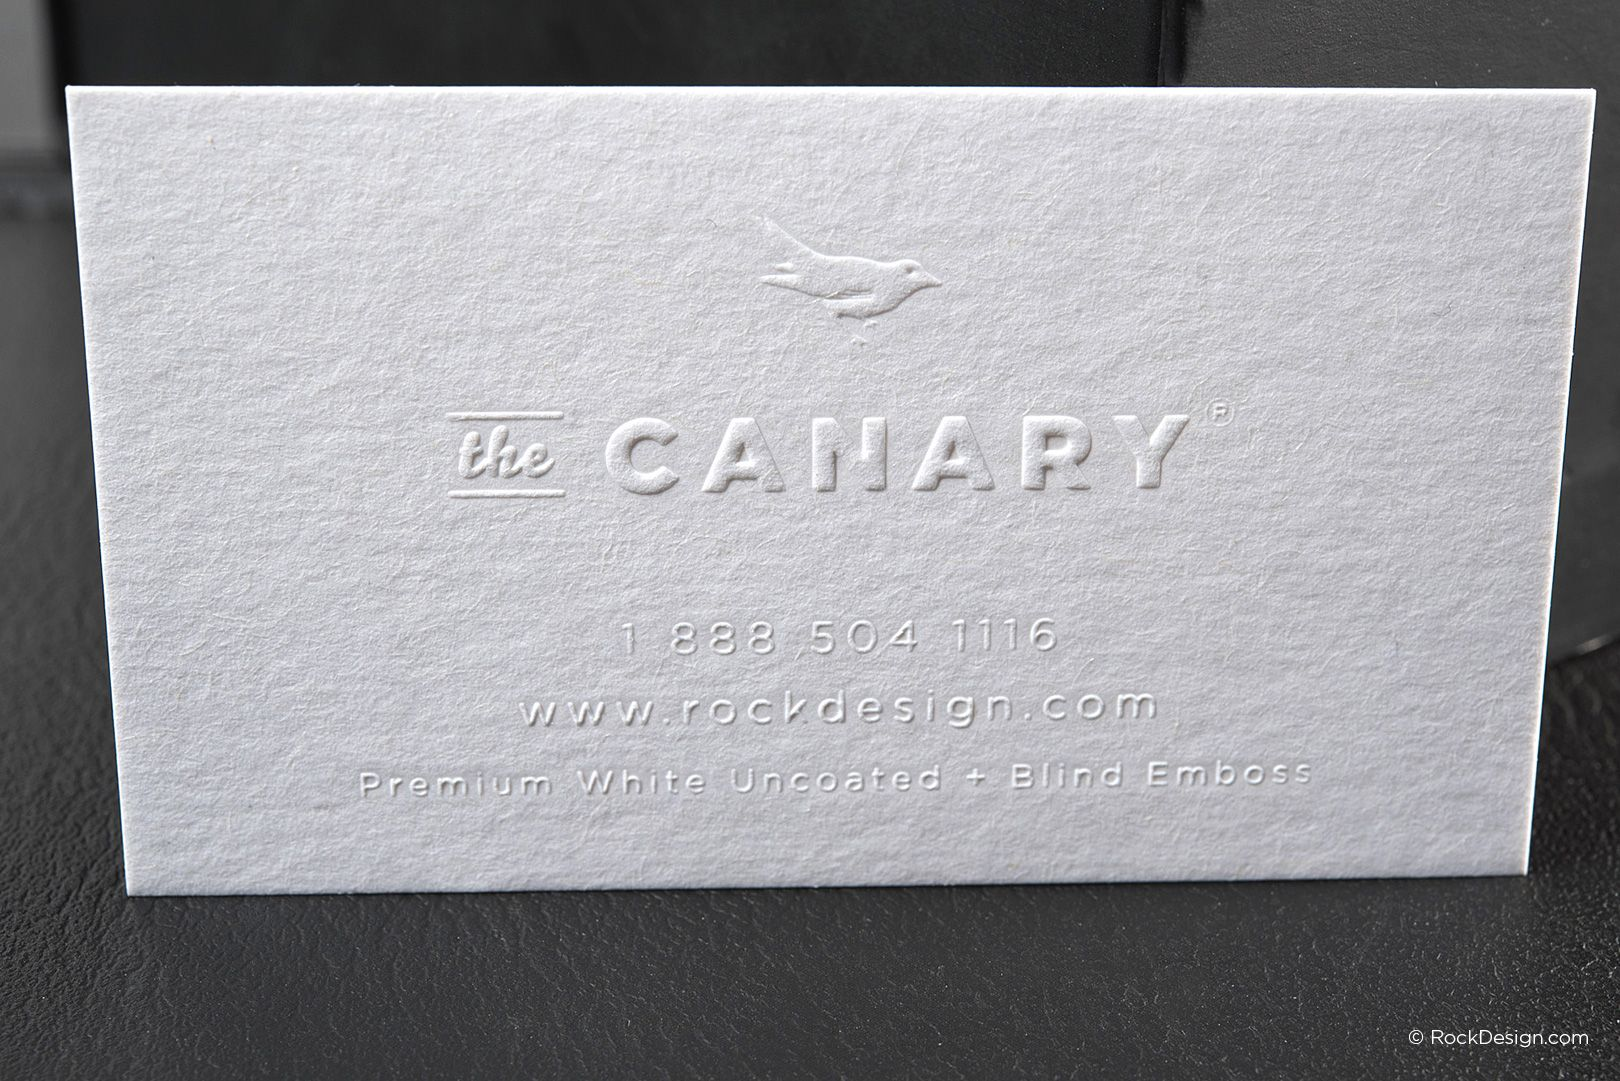 Minimalist blind emboss premium white business card - The Canary ...